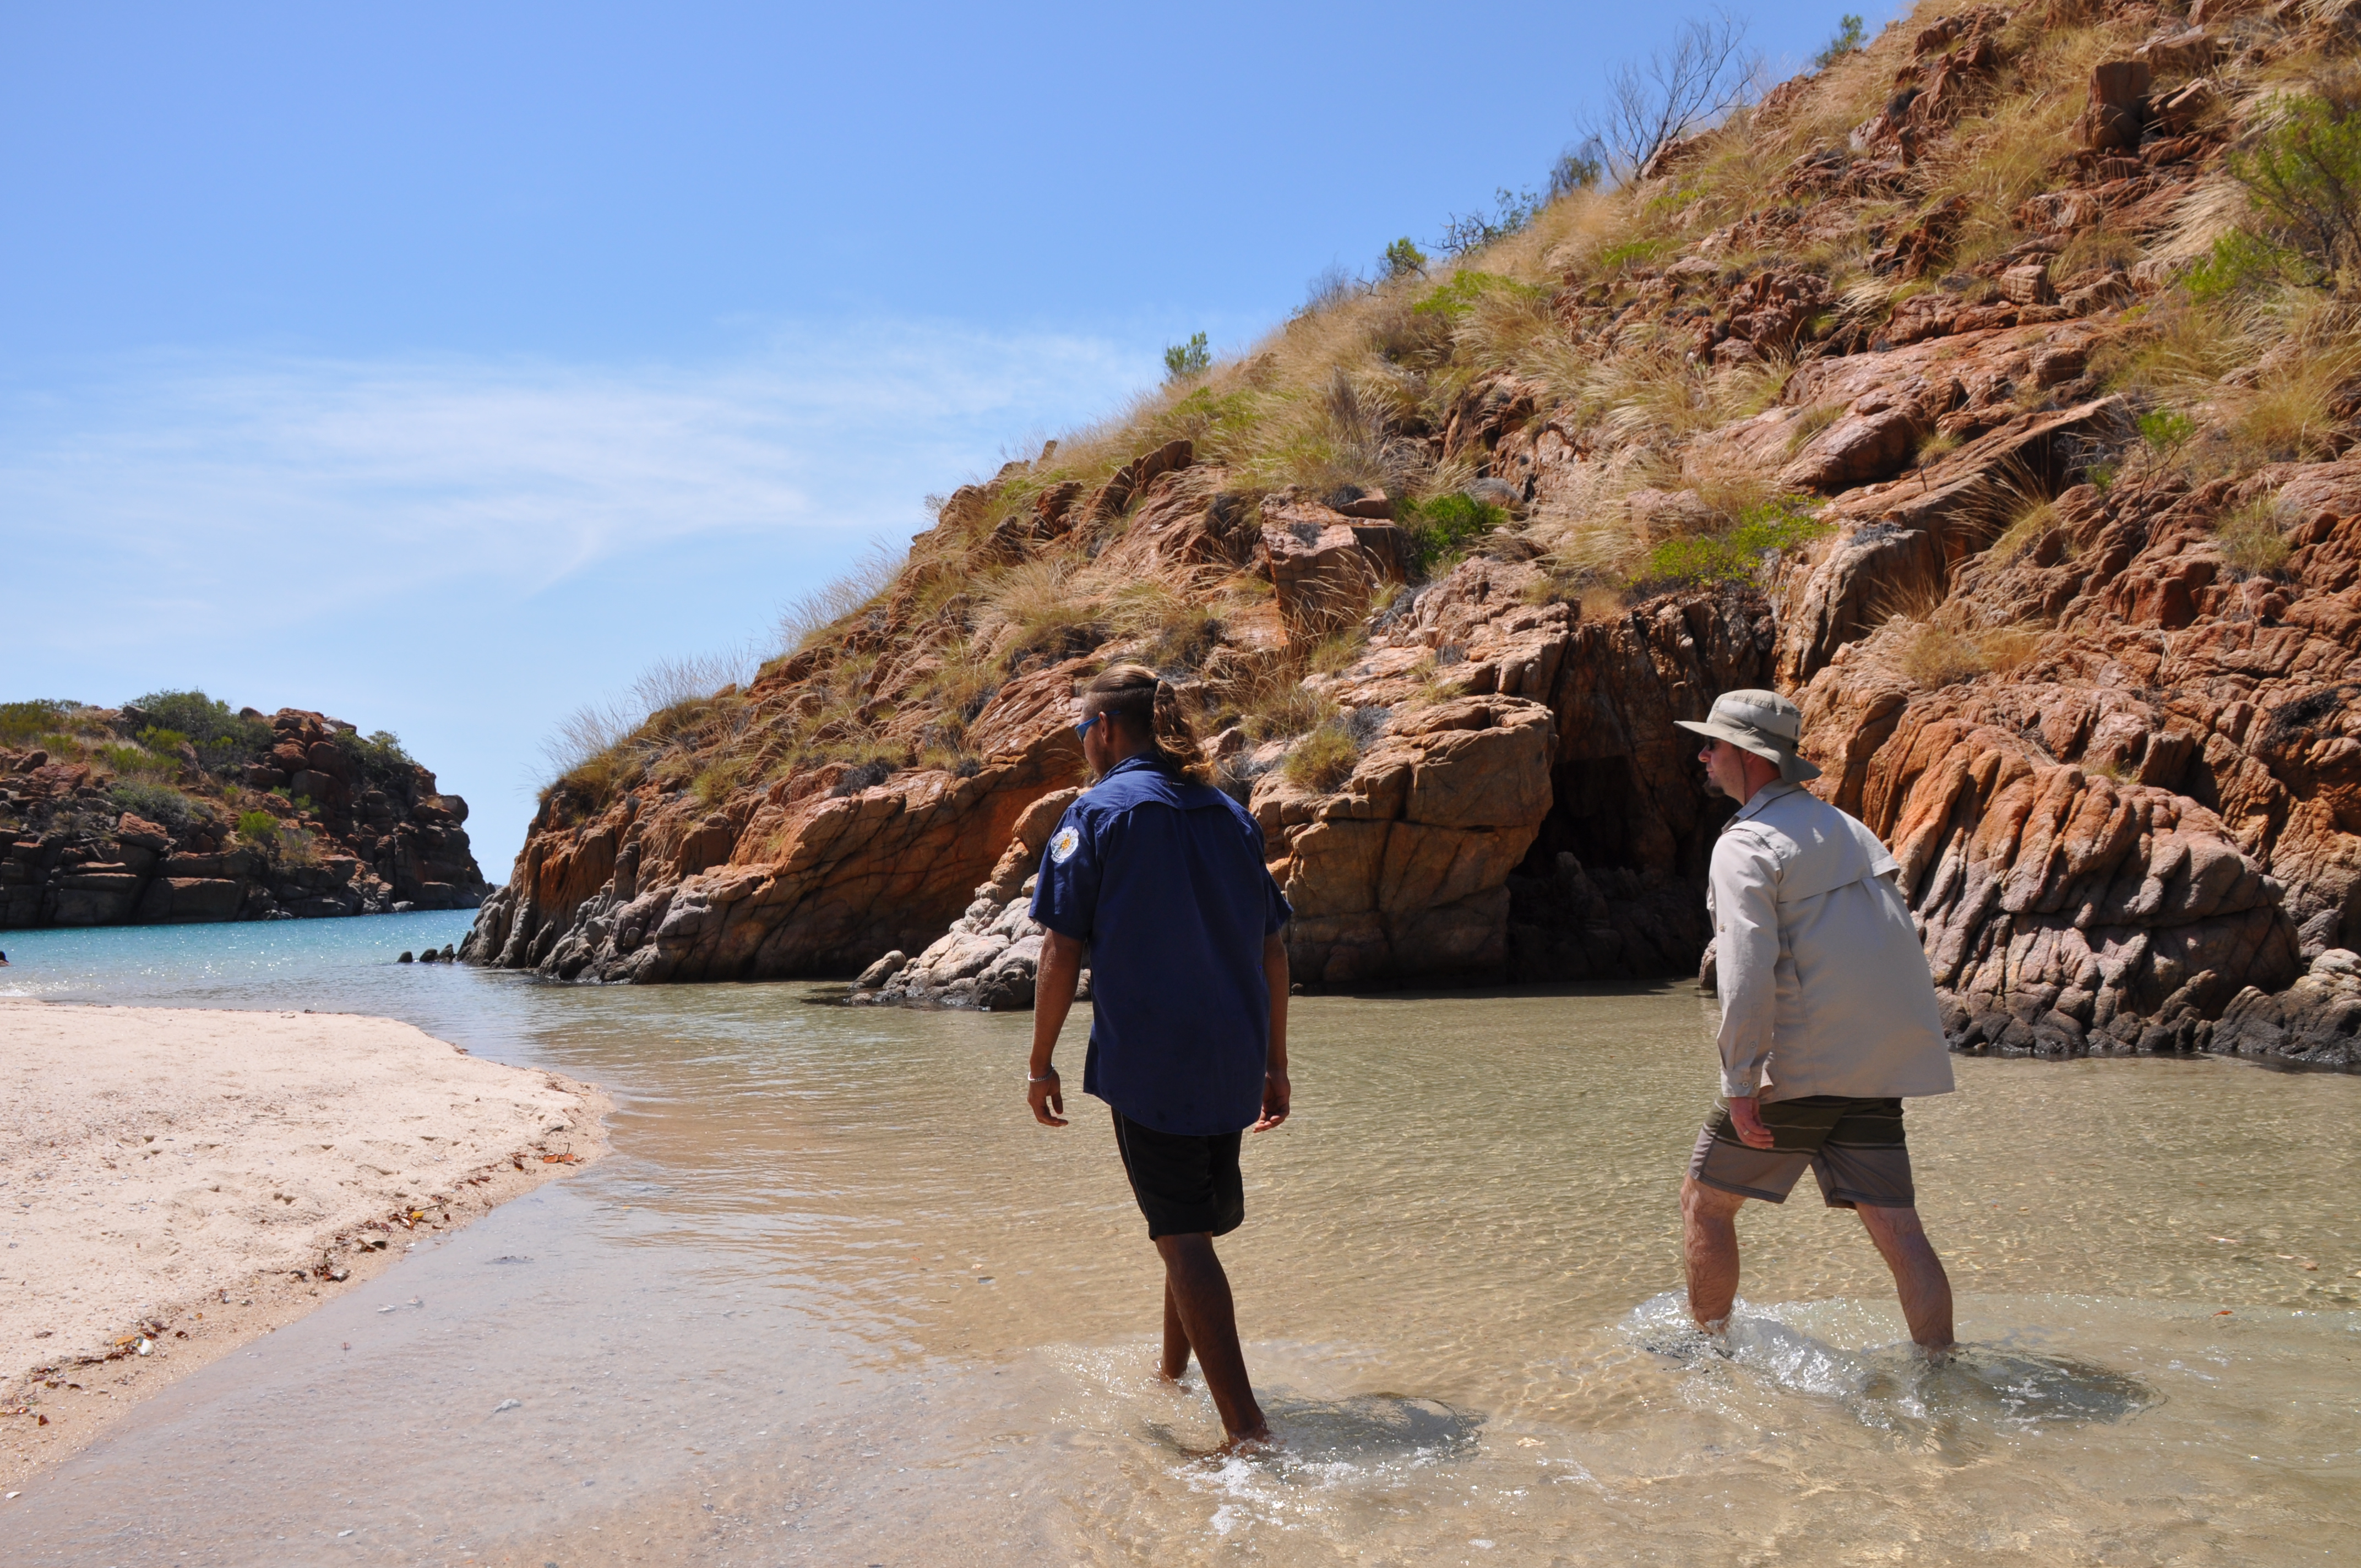 Two people walking in a water way in the Kimberley